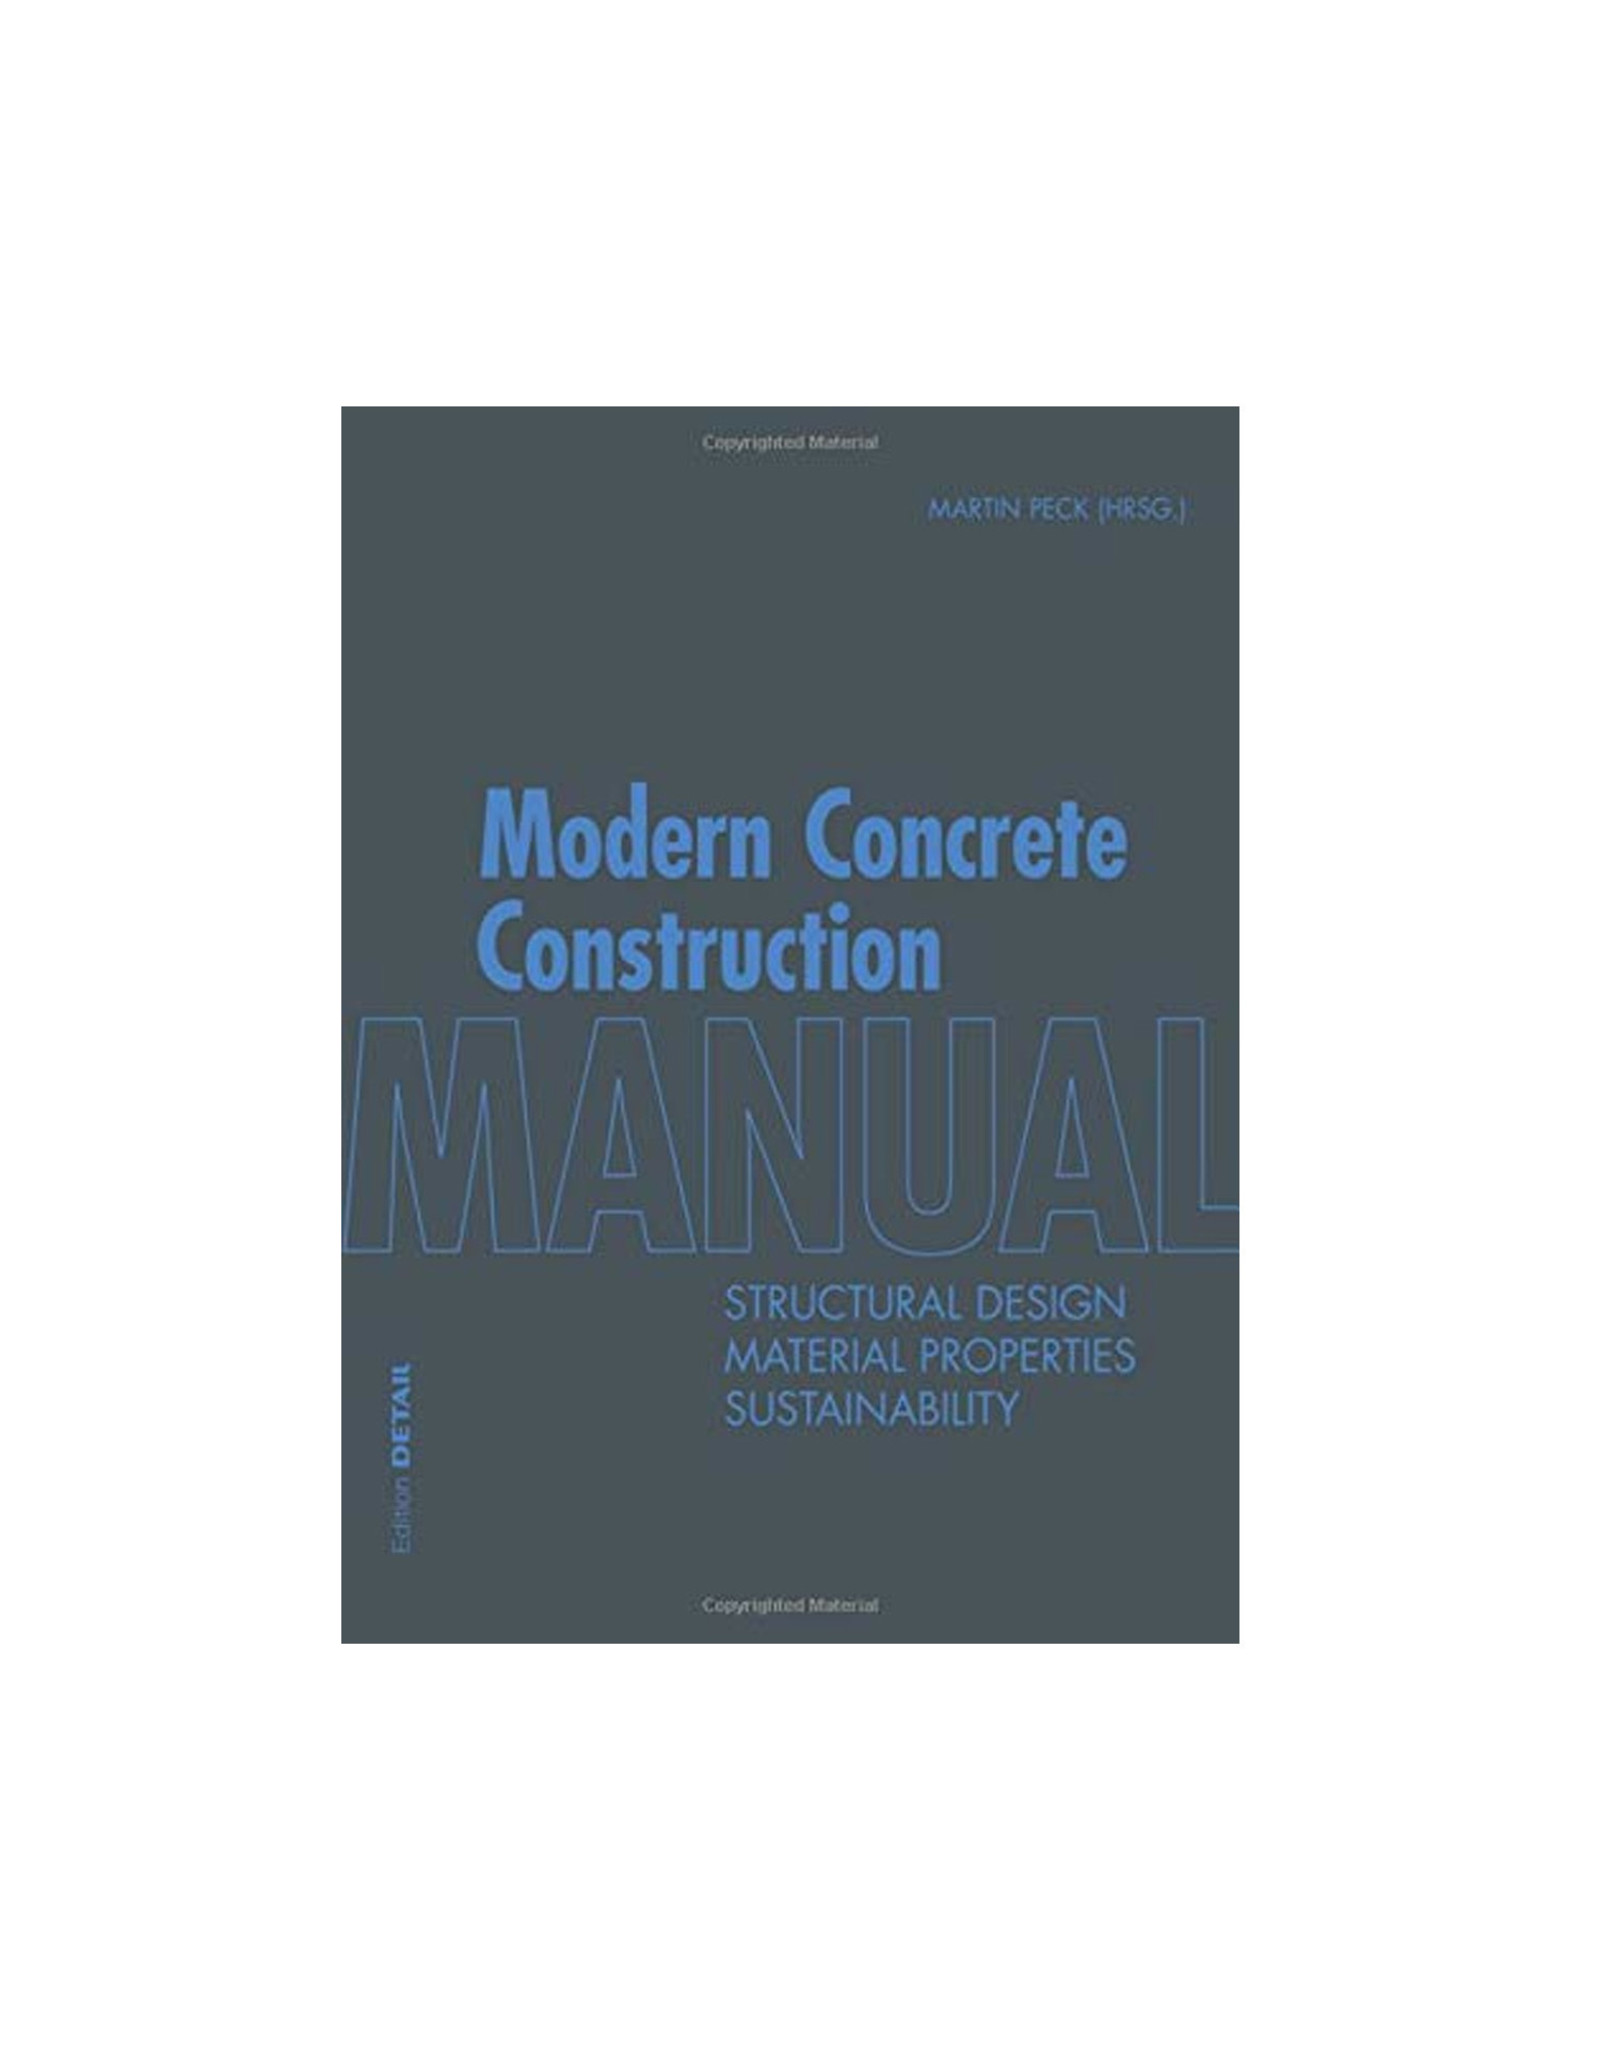 Modern Concrete Construction Manual: Structural Design, Material Properties, Sustainability